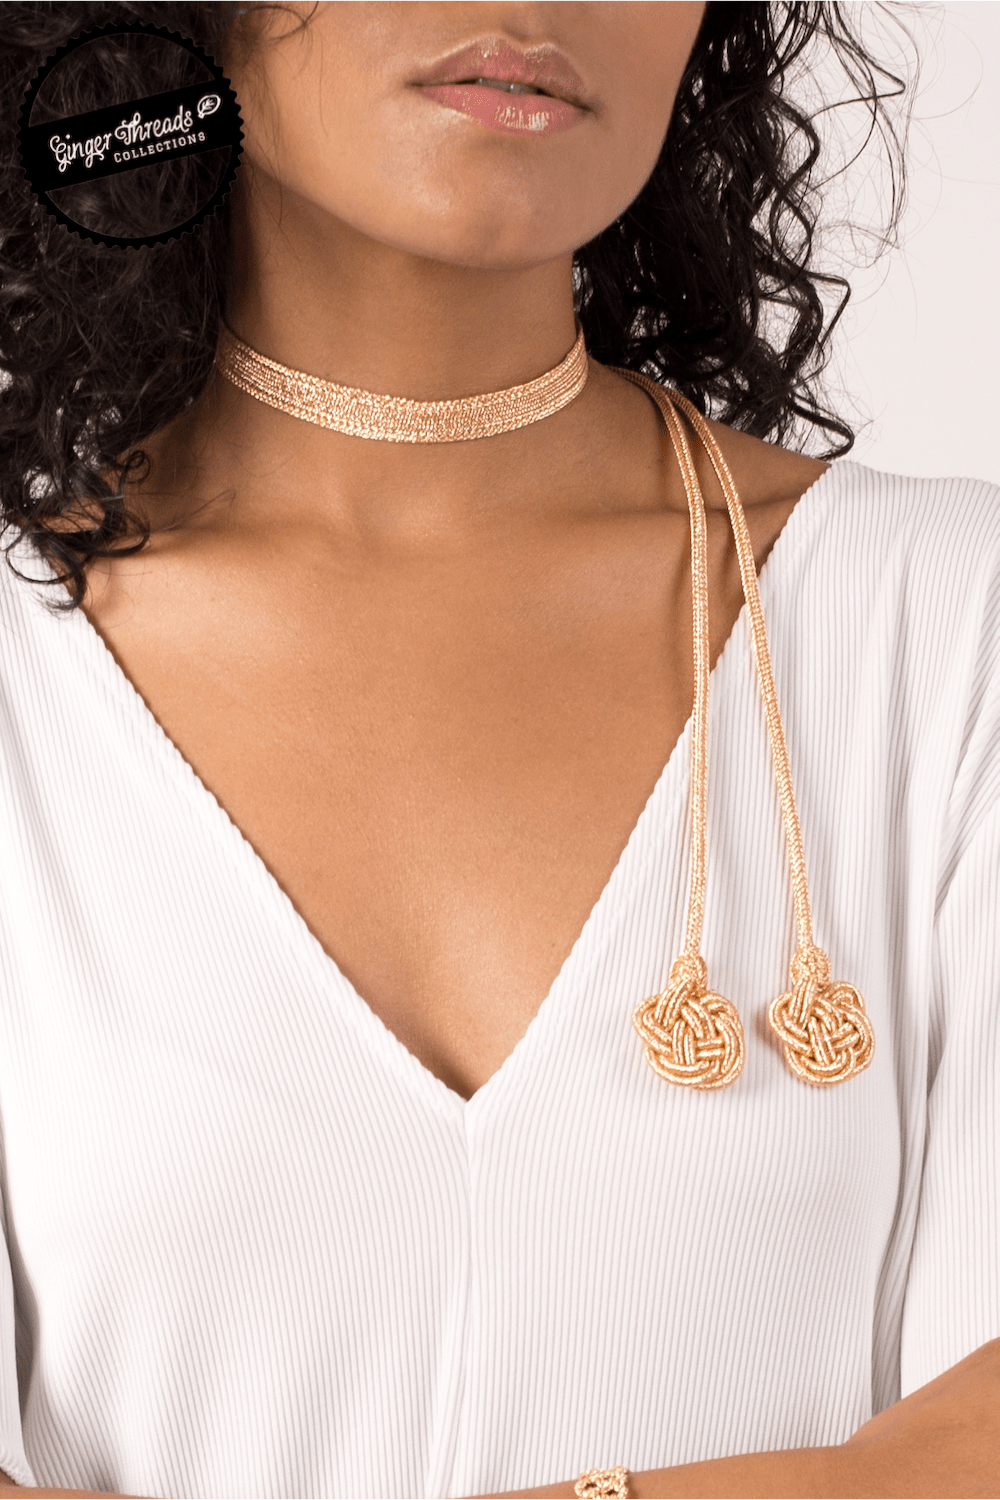 Ginger Threads Collections choker Gold Moroccan Choker